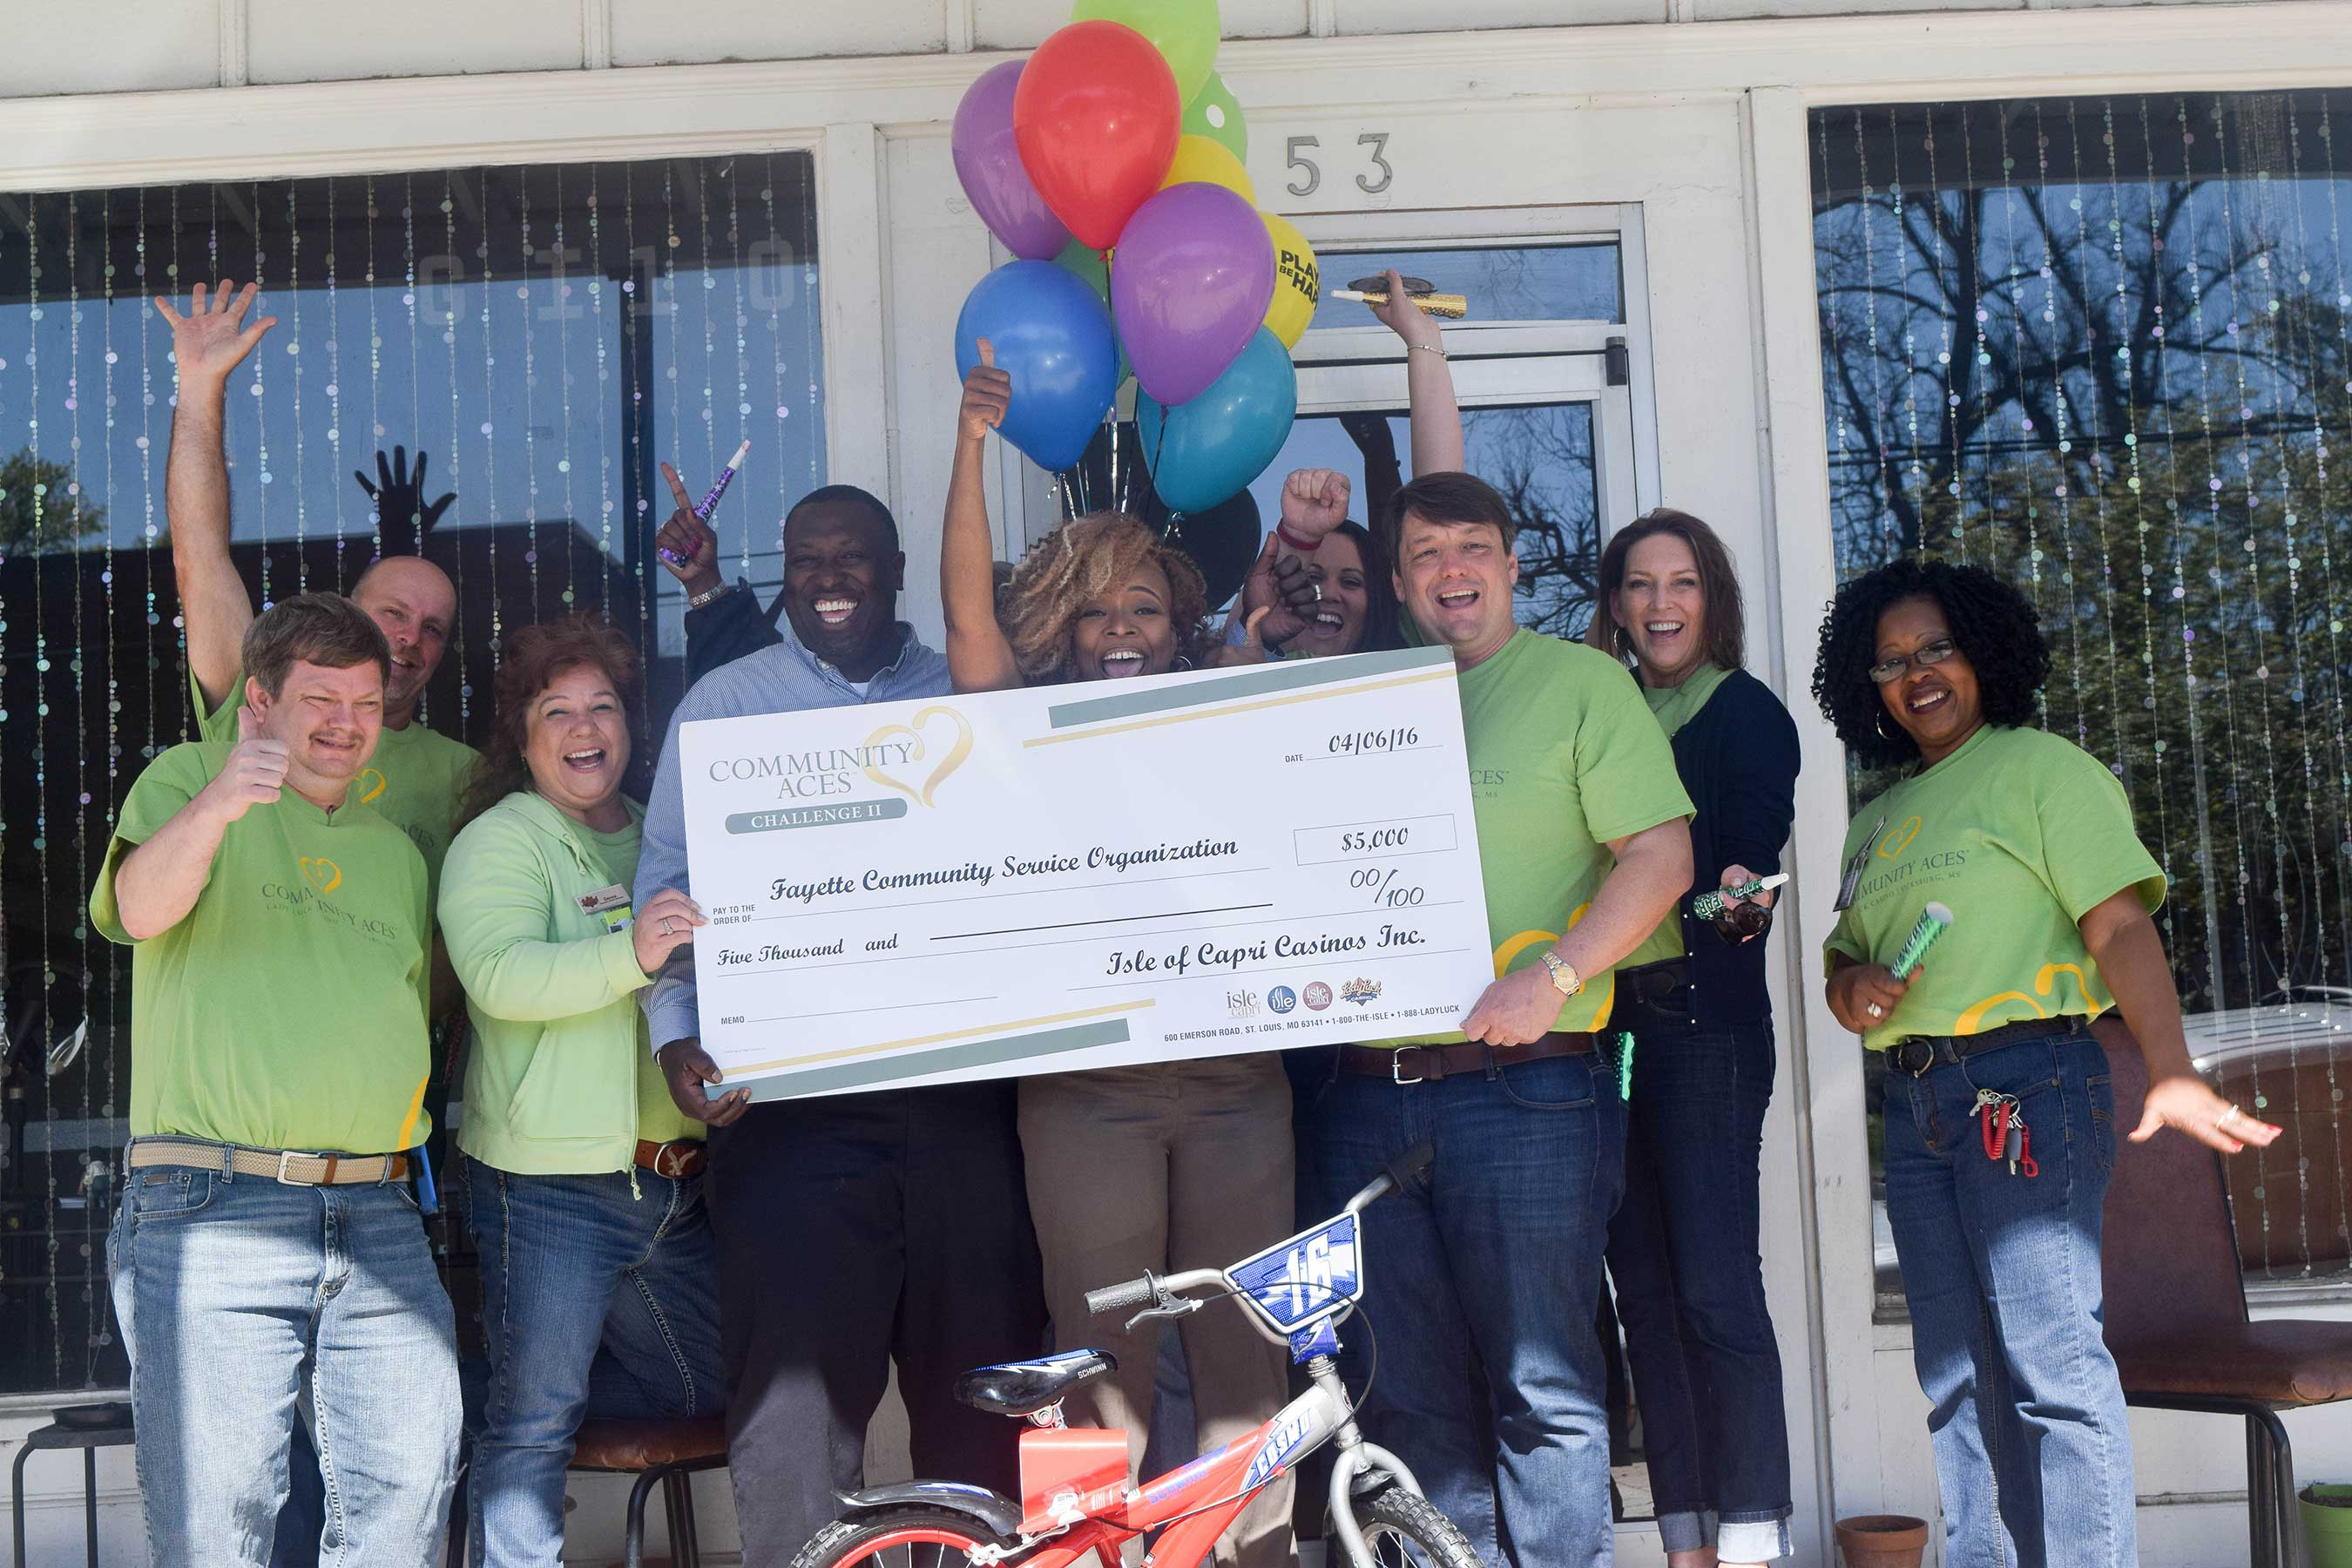 Fayette Community Service Organization, based in Fayette, Mississippi, was granted $5,000 toward the purchase of bicycles for its Get Fit program.